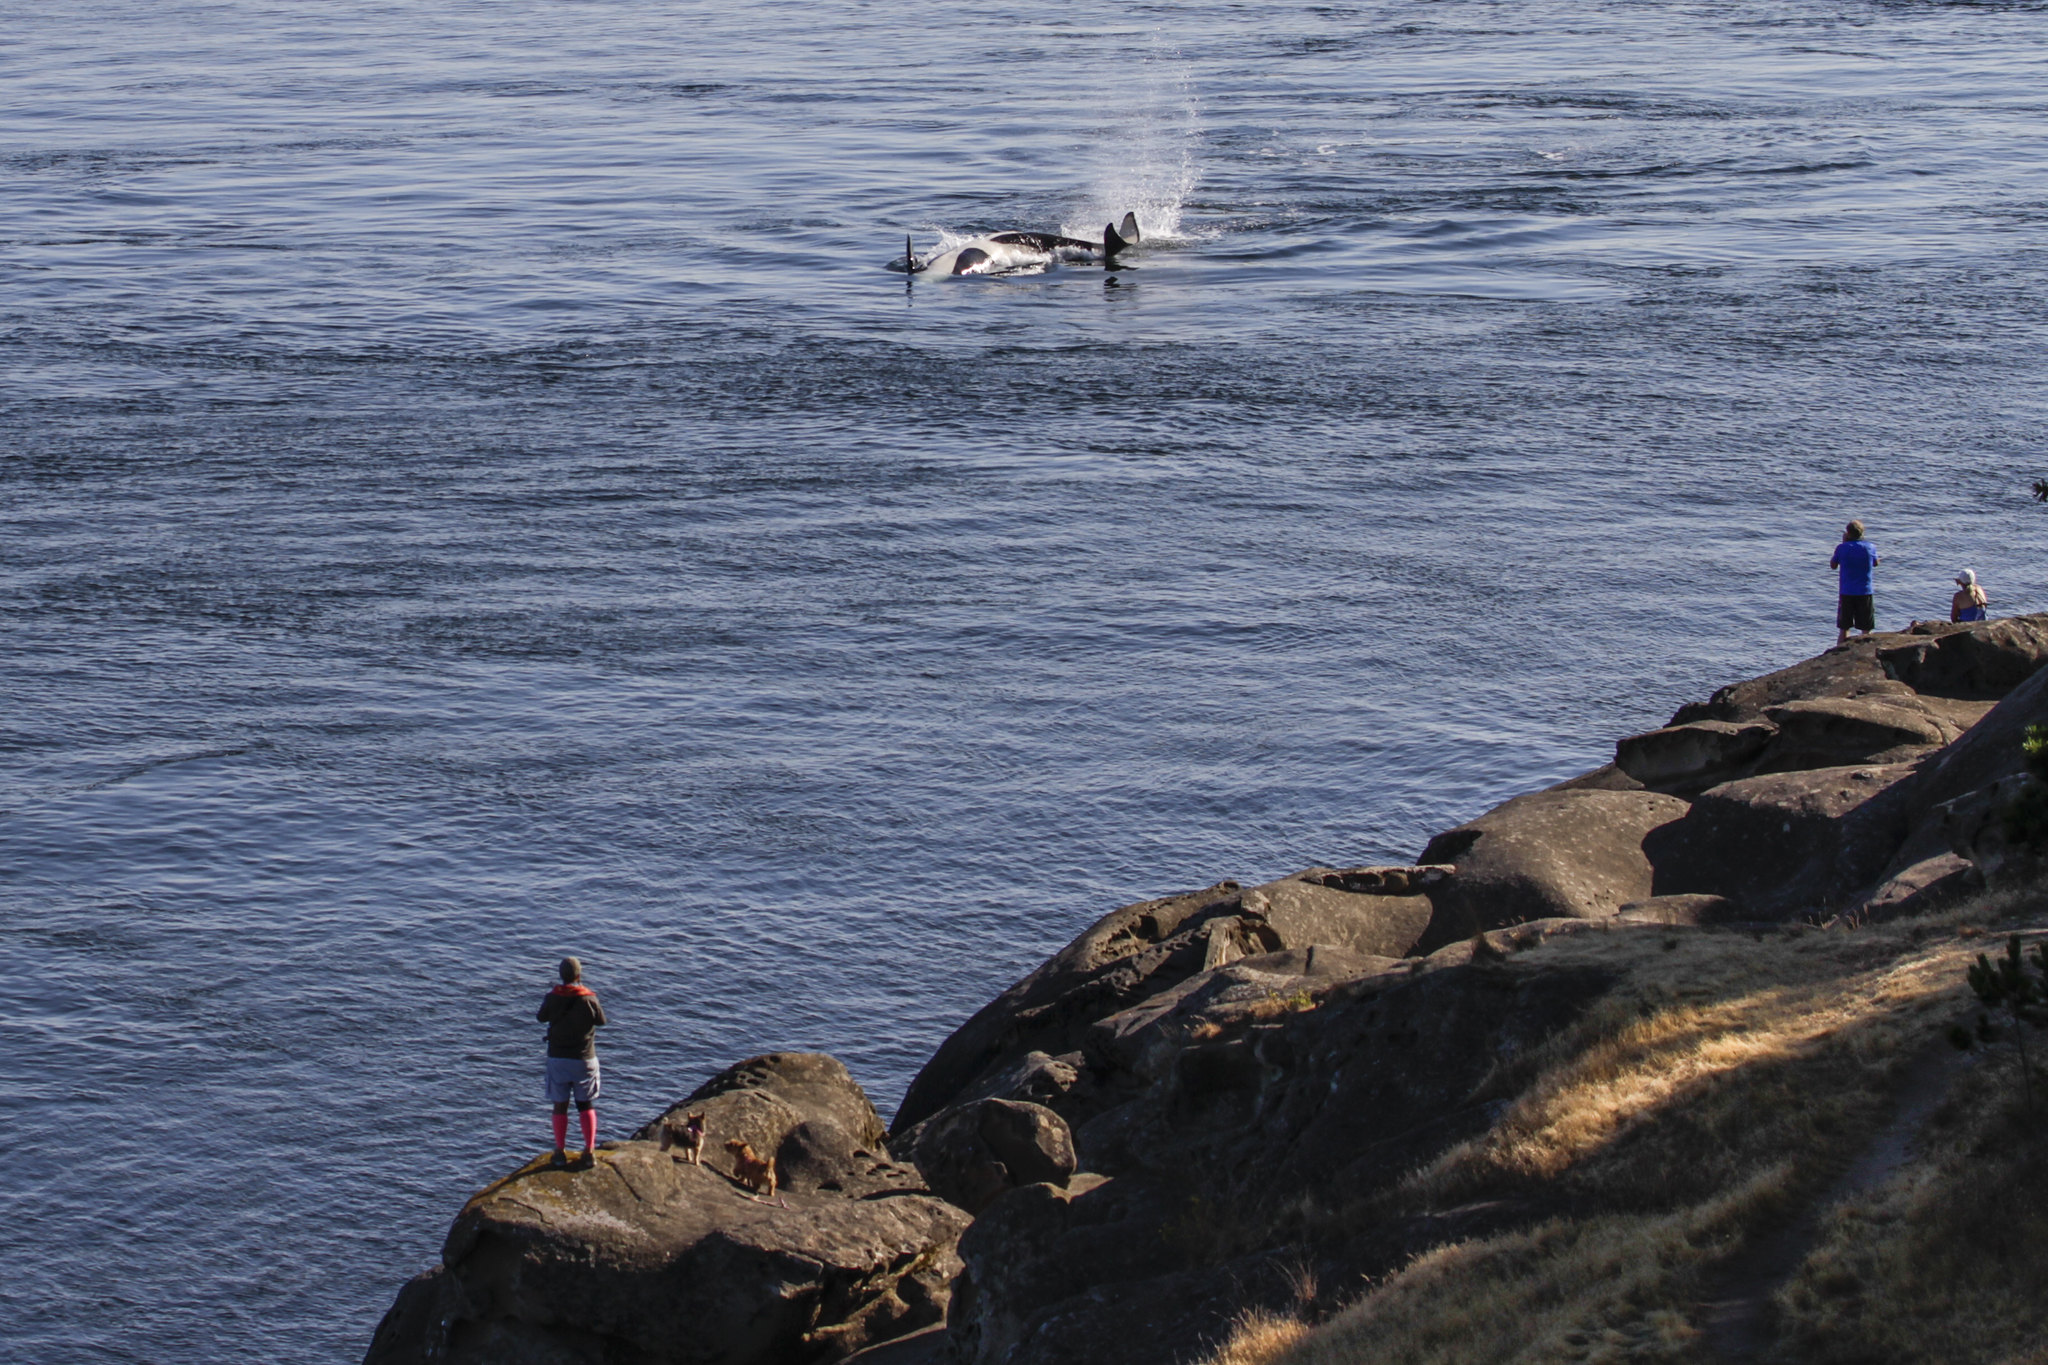 Saturna Island's East Point whale watching bluff, July 25 2018, the start of an encounter with J's and K's